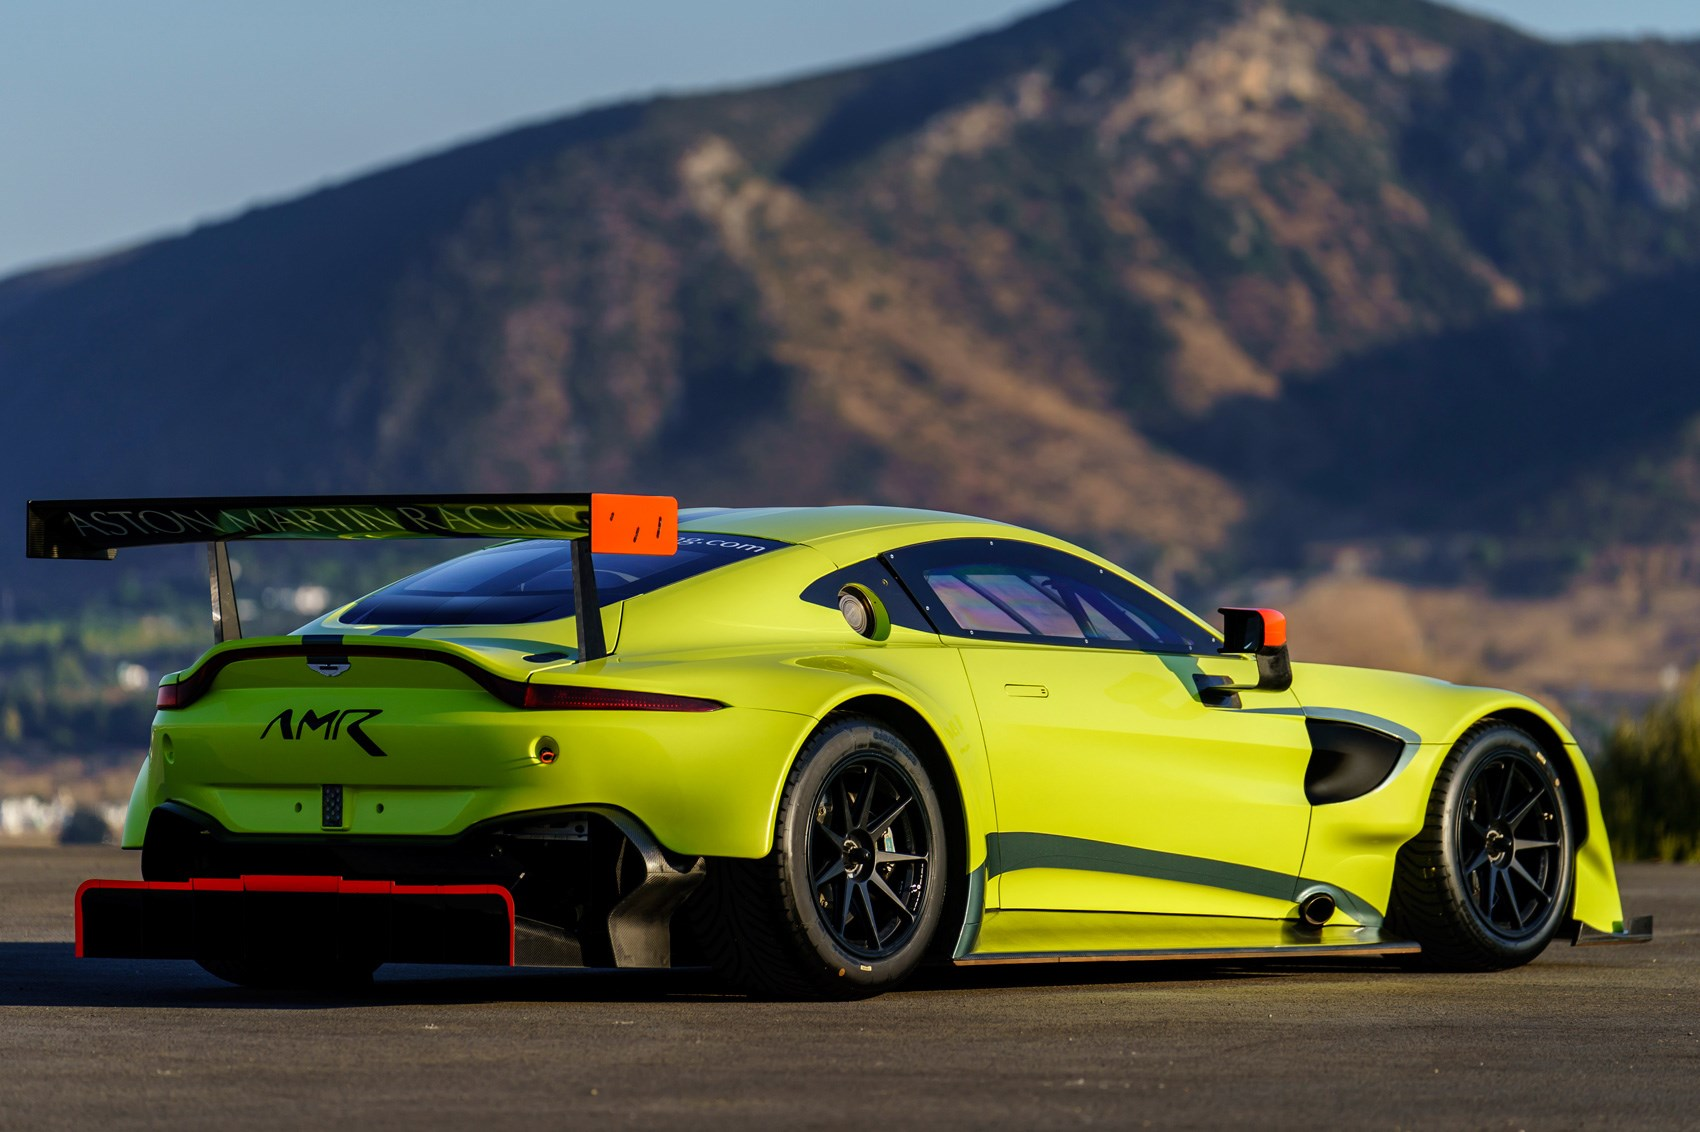 Nissan March Tuning >> Meet the world-eater: new Aston Martin Racing Vantage GTE revealed | CAR Magazine